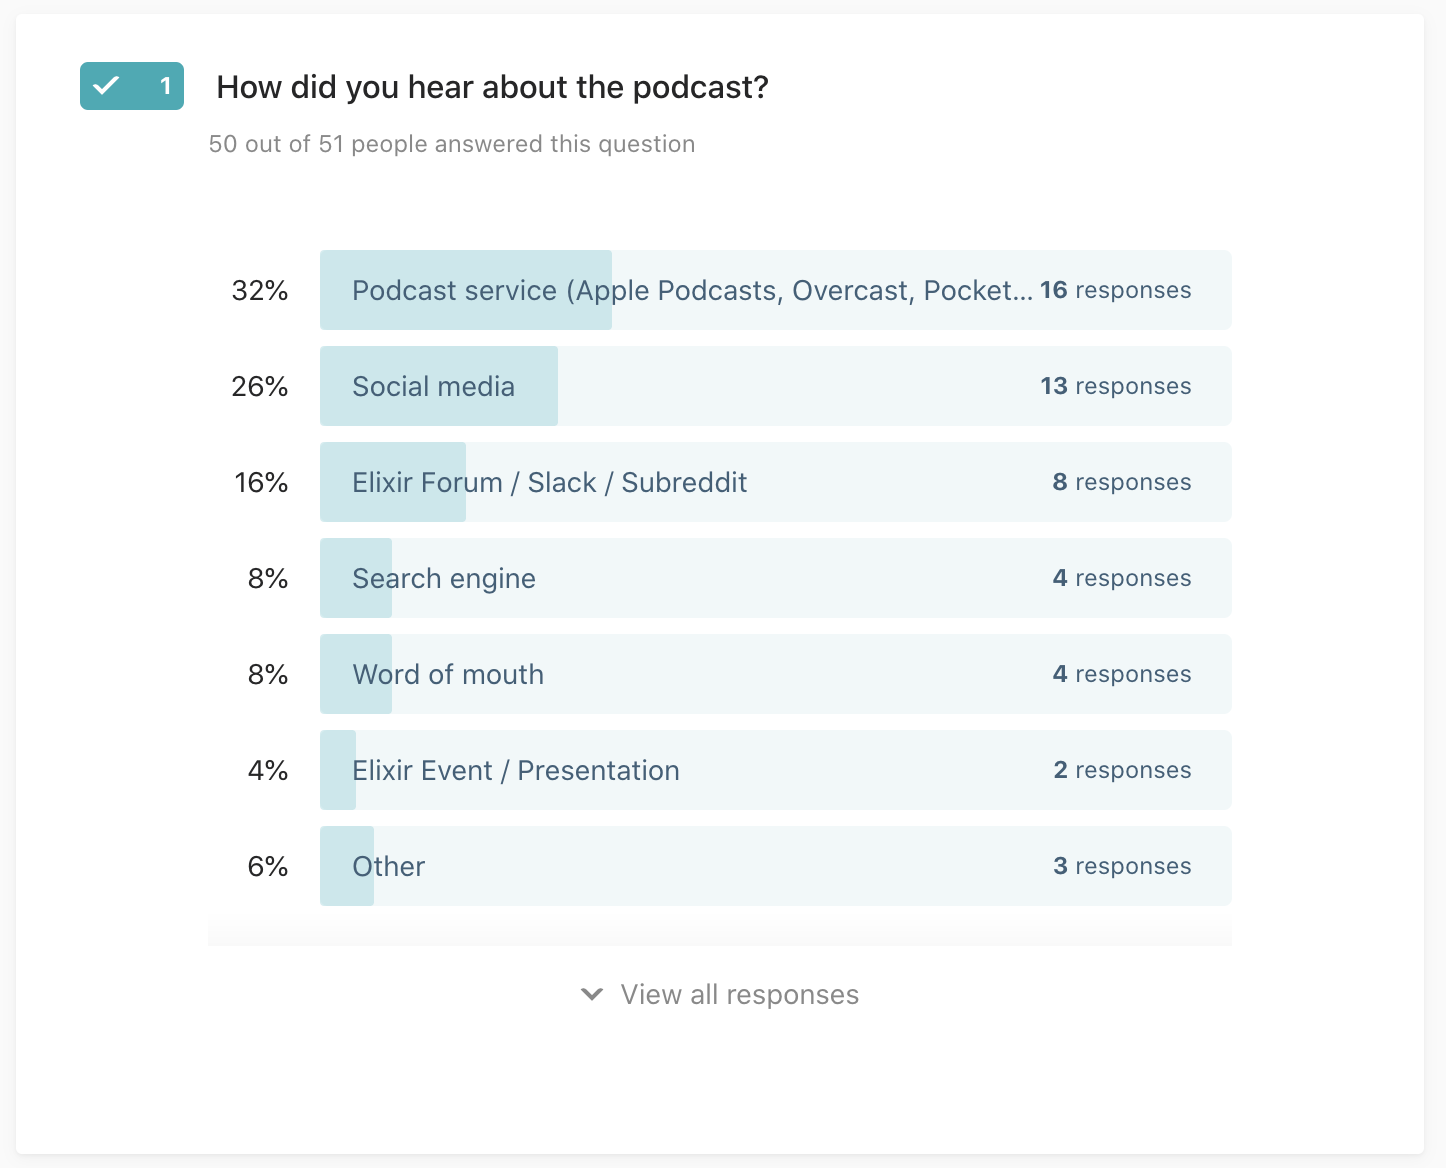 "Picture of a survey question ""How did you hear about the podcast?"" with responses: 33% podcast service, 26% social media, 16% Elixir forum/slack/subreddit, 8% search engine, 8% word of mouth"